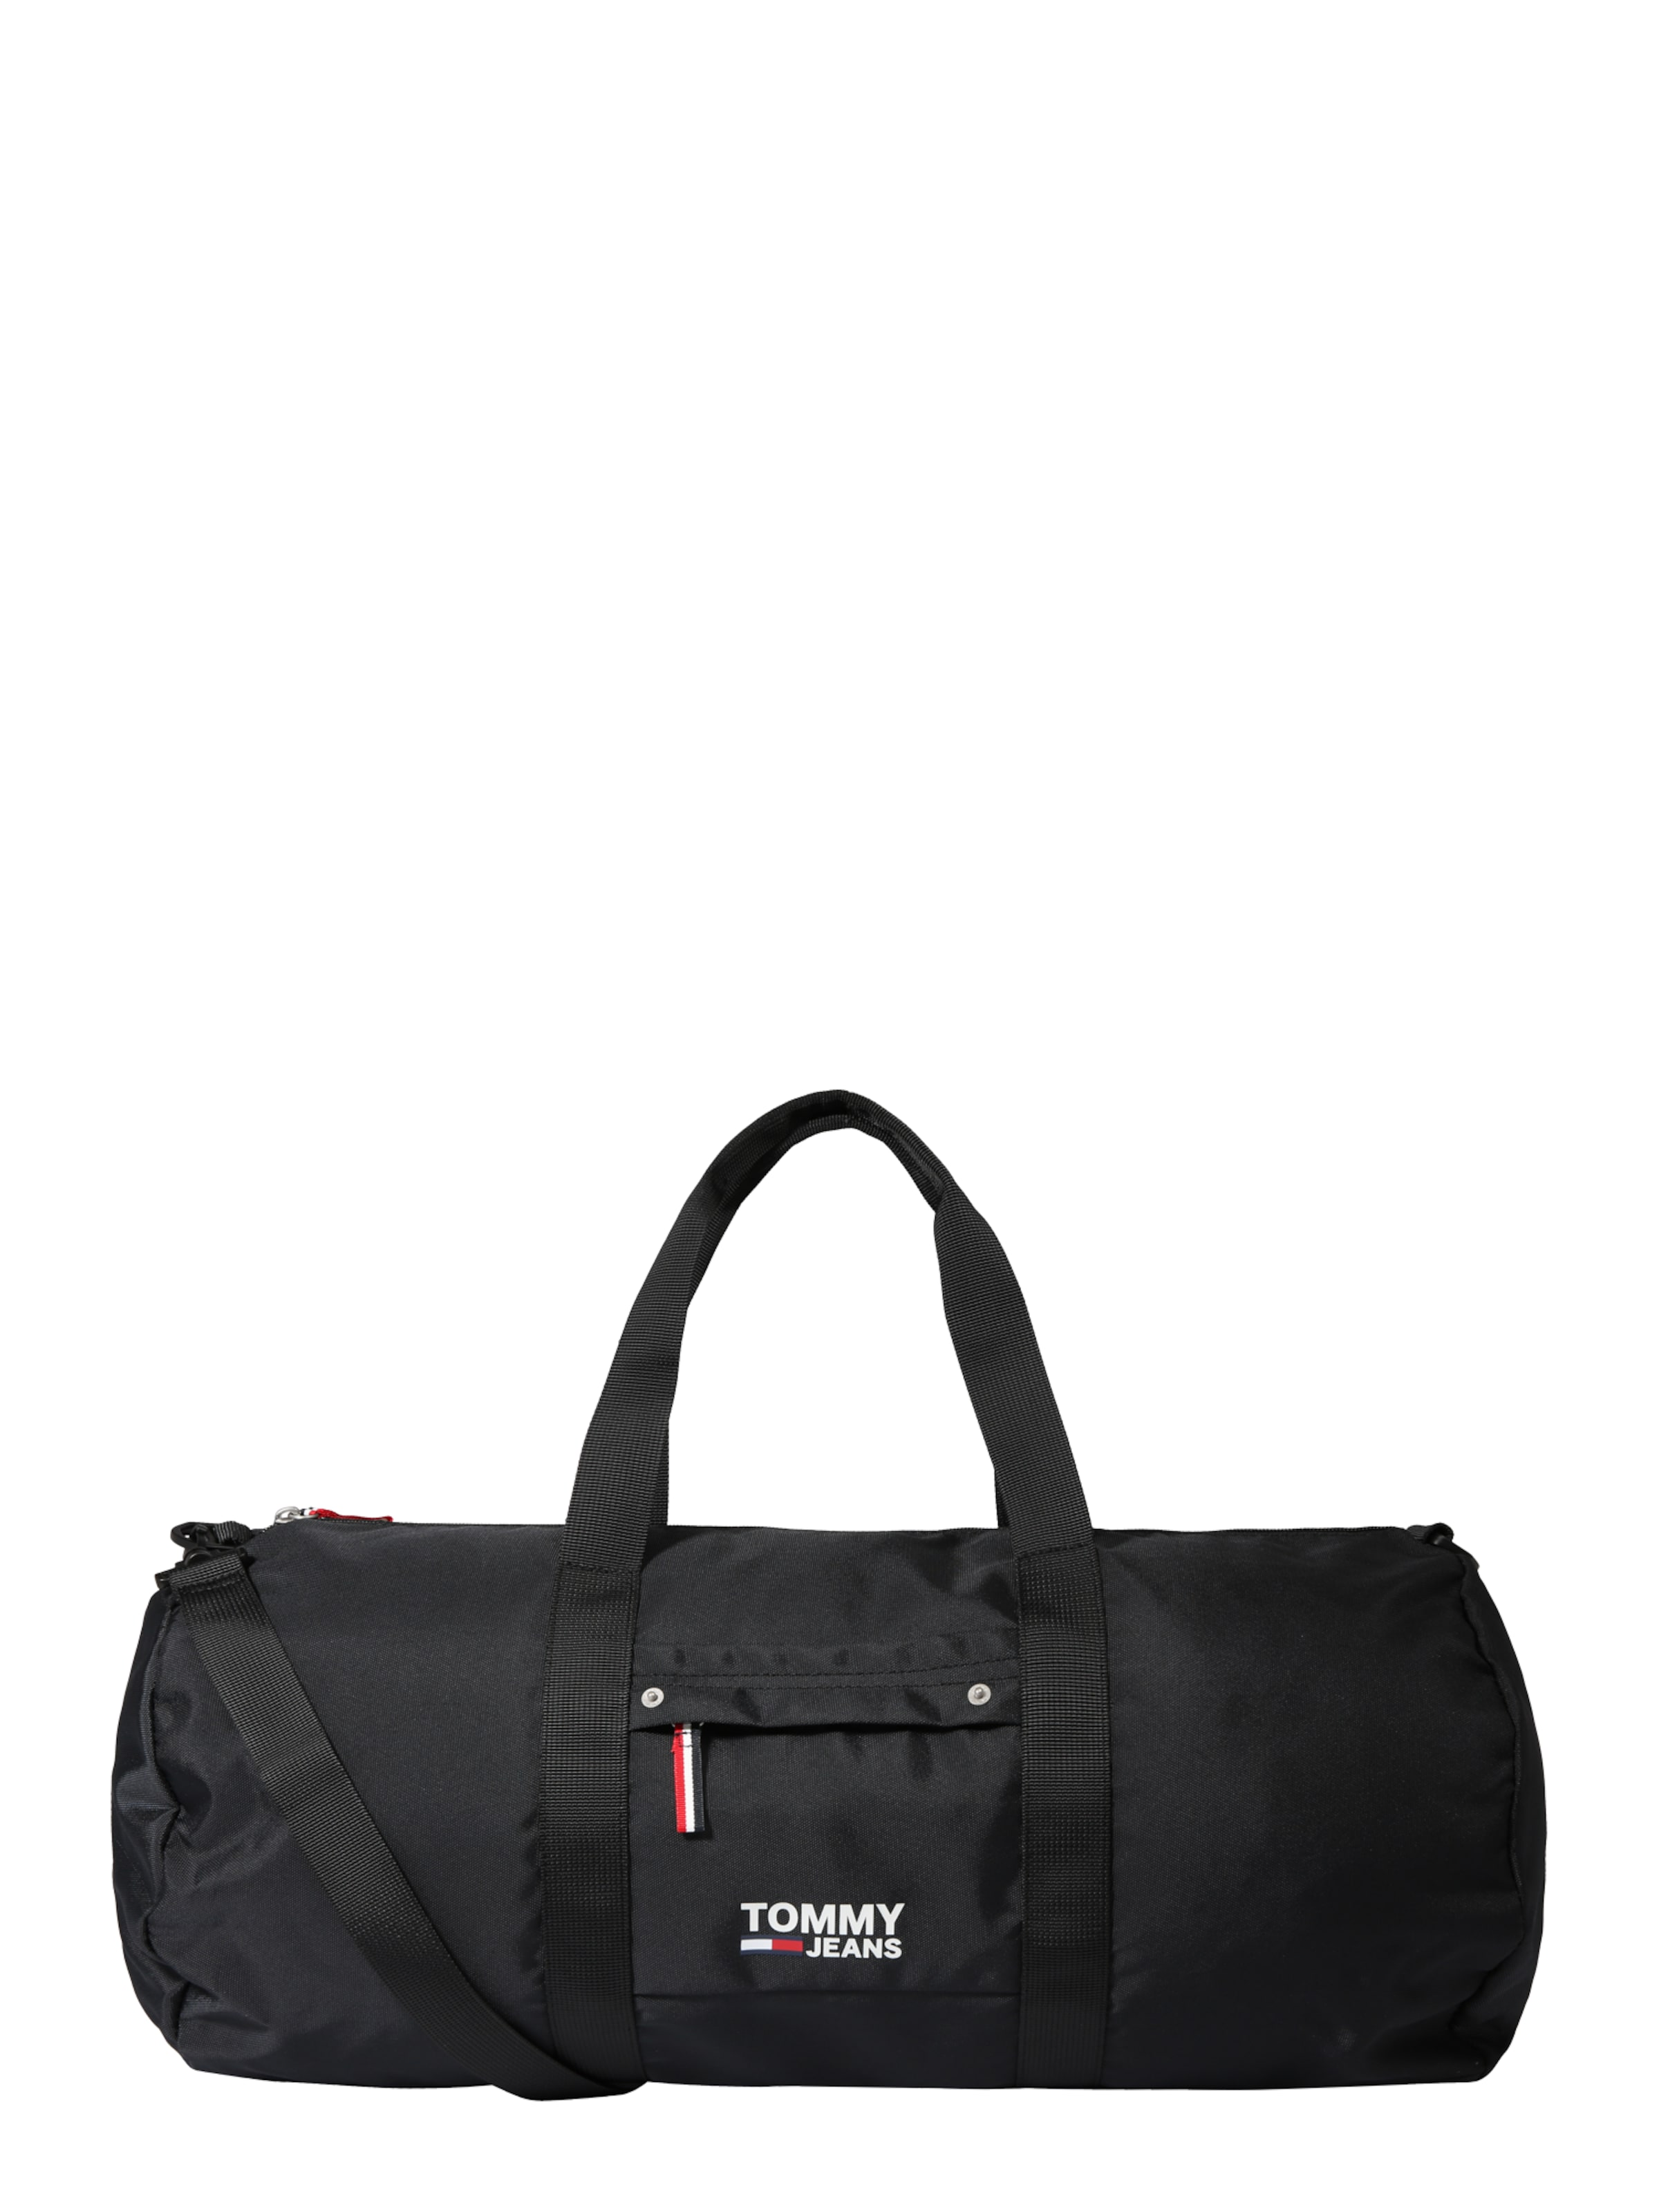 Tommy Reistas City Duffle' In Zwart Jeans 'cool rdCxWBoe